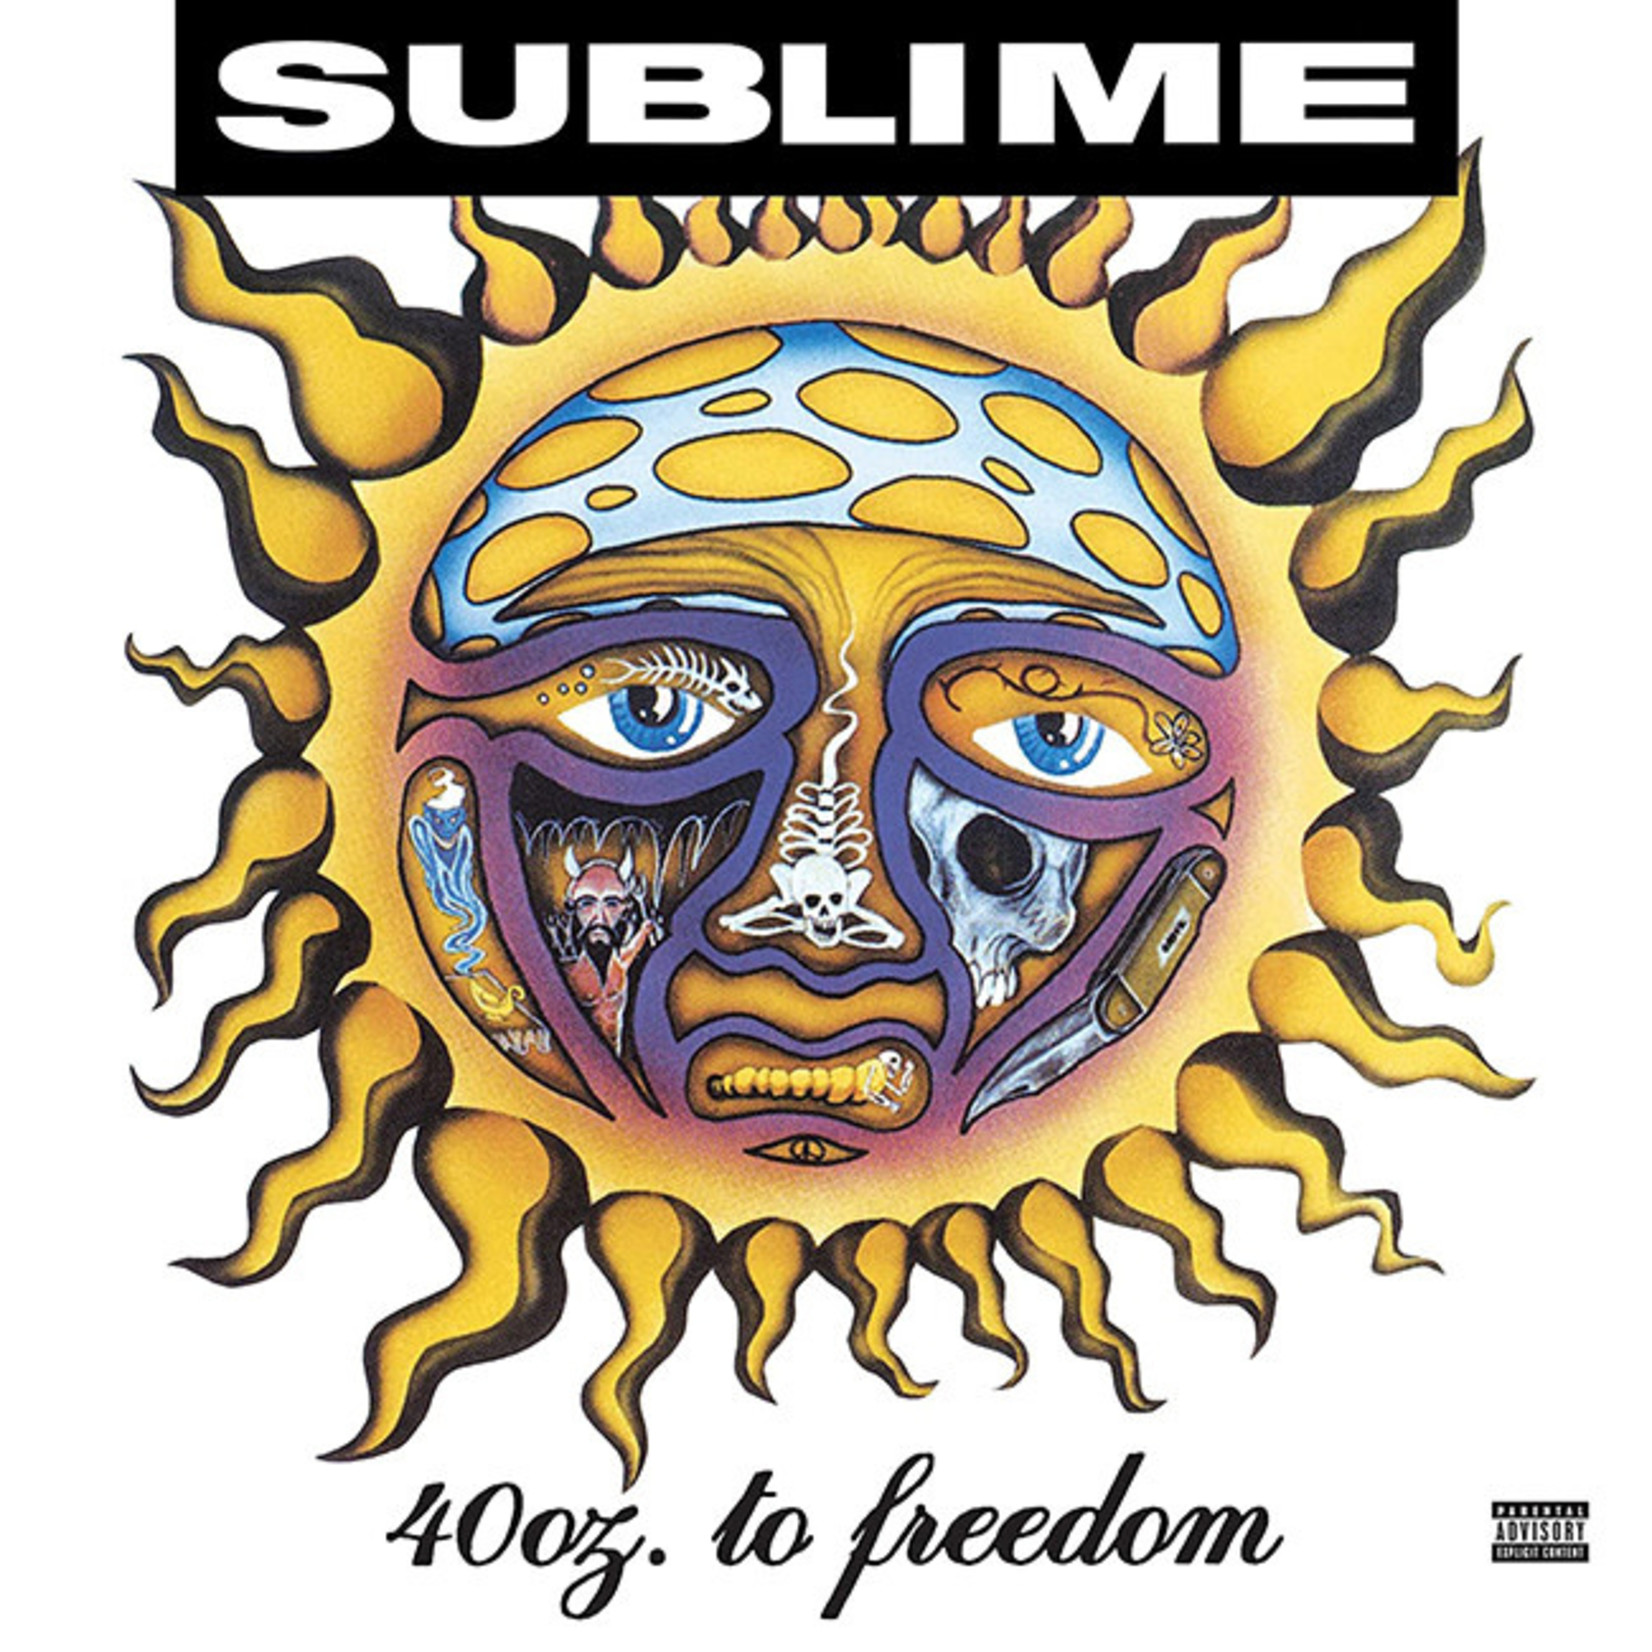 [New] Sublime: 40 Oz To Freedom (2LP)